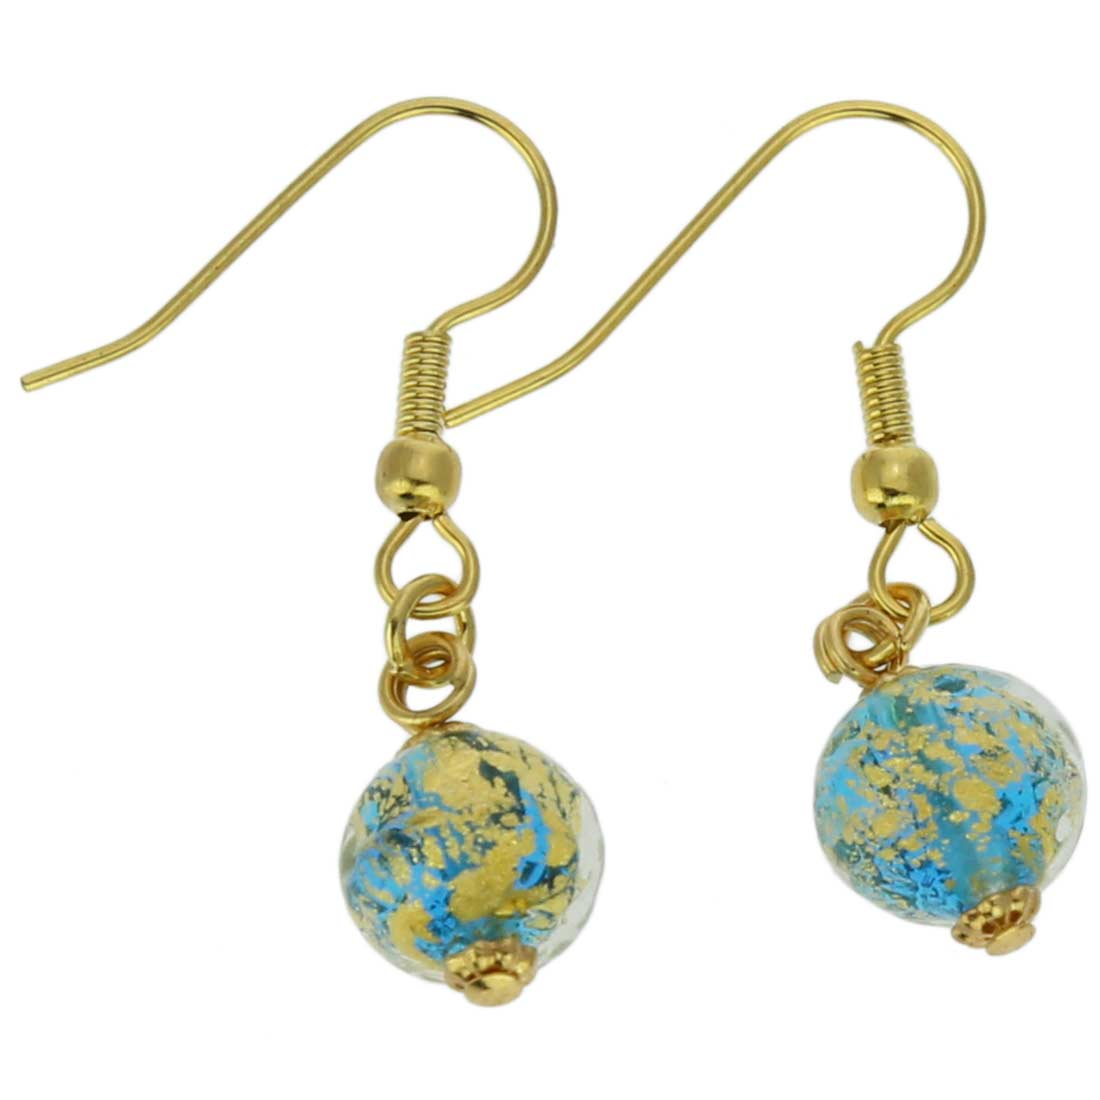 Golden Glow Earrings - Aqua